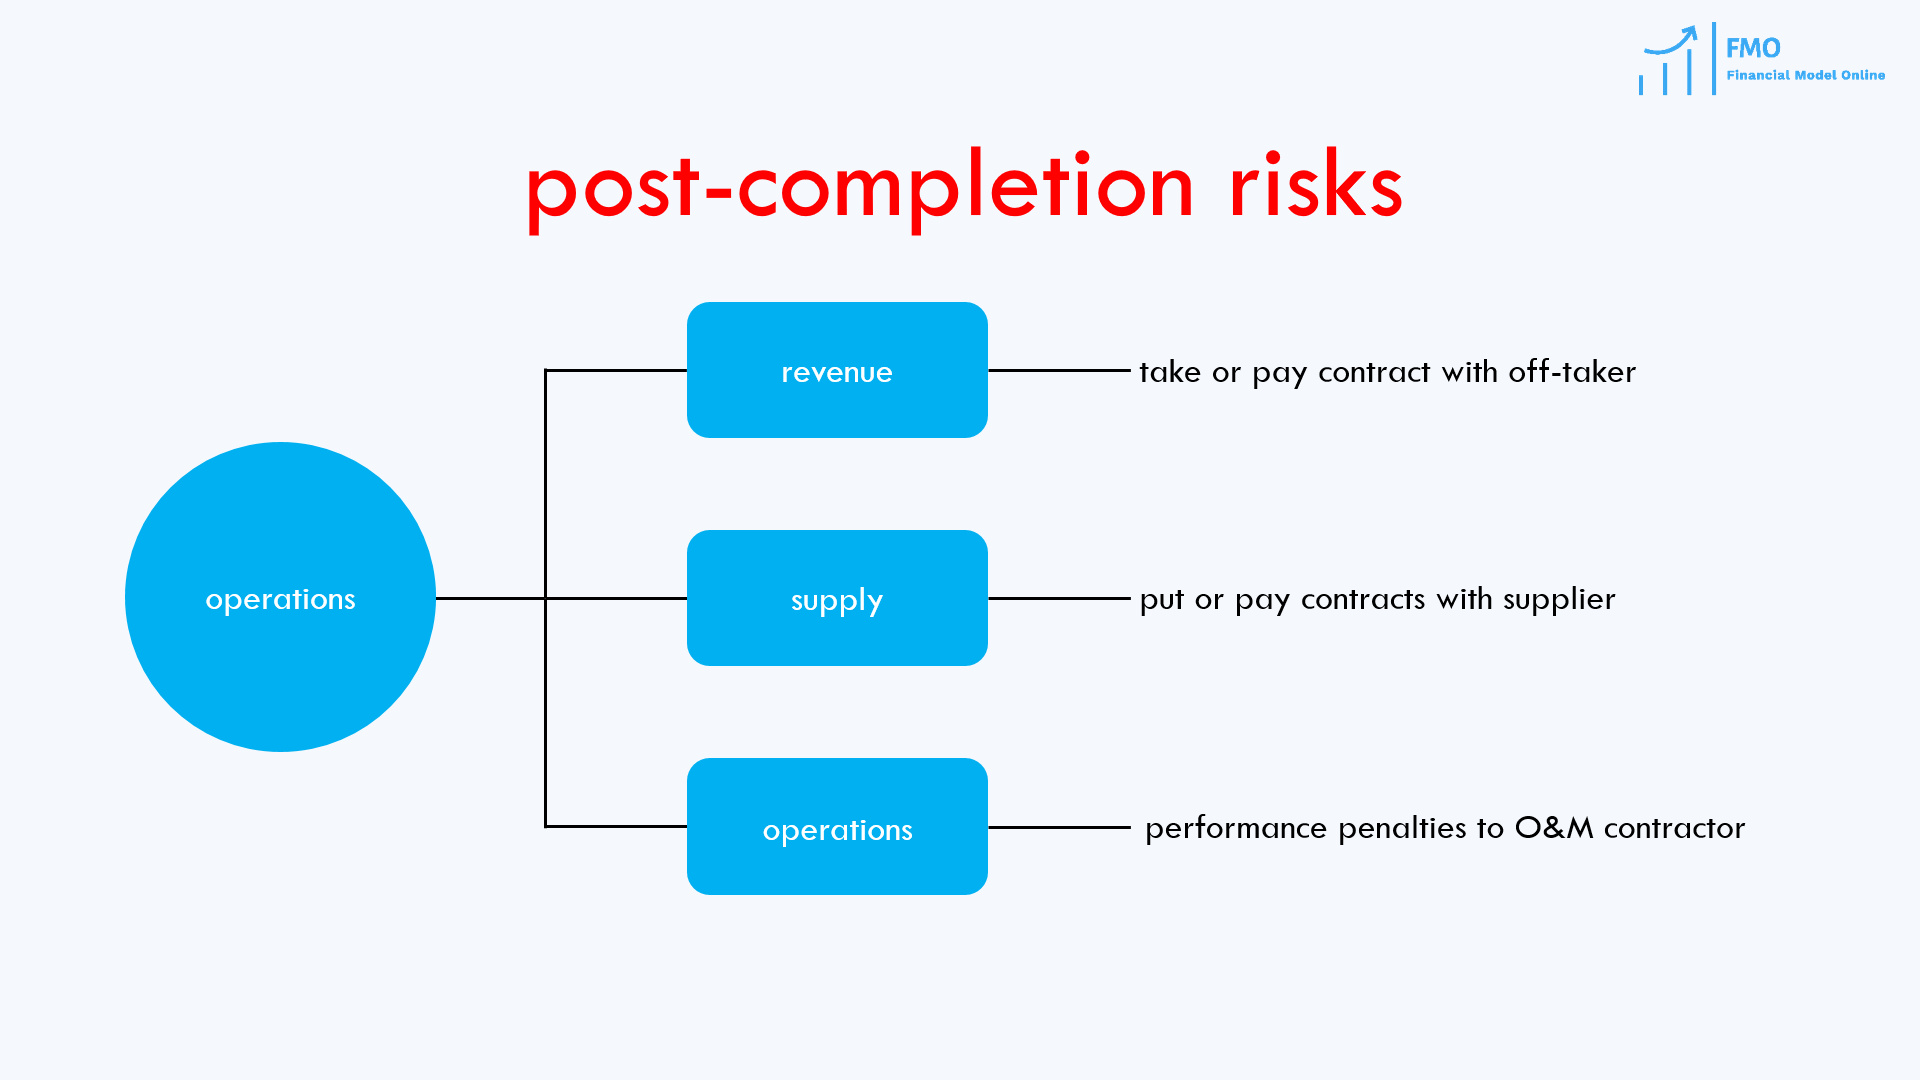 post-completion risks in project finance